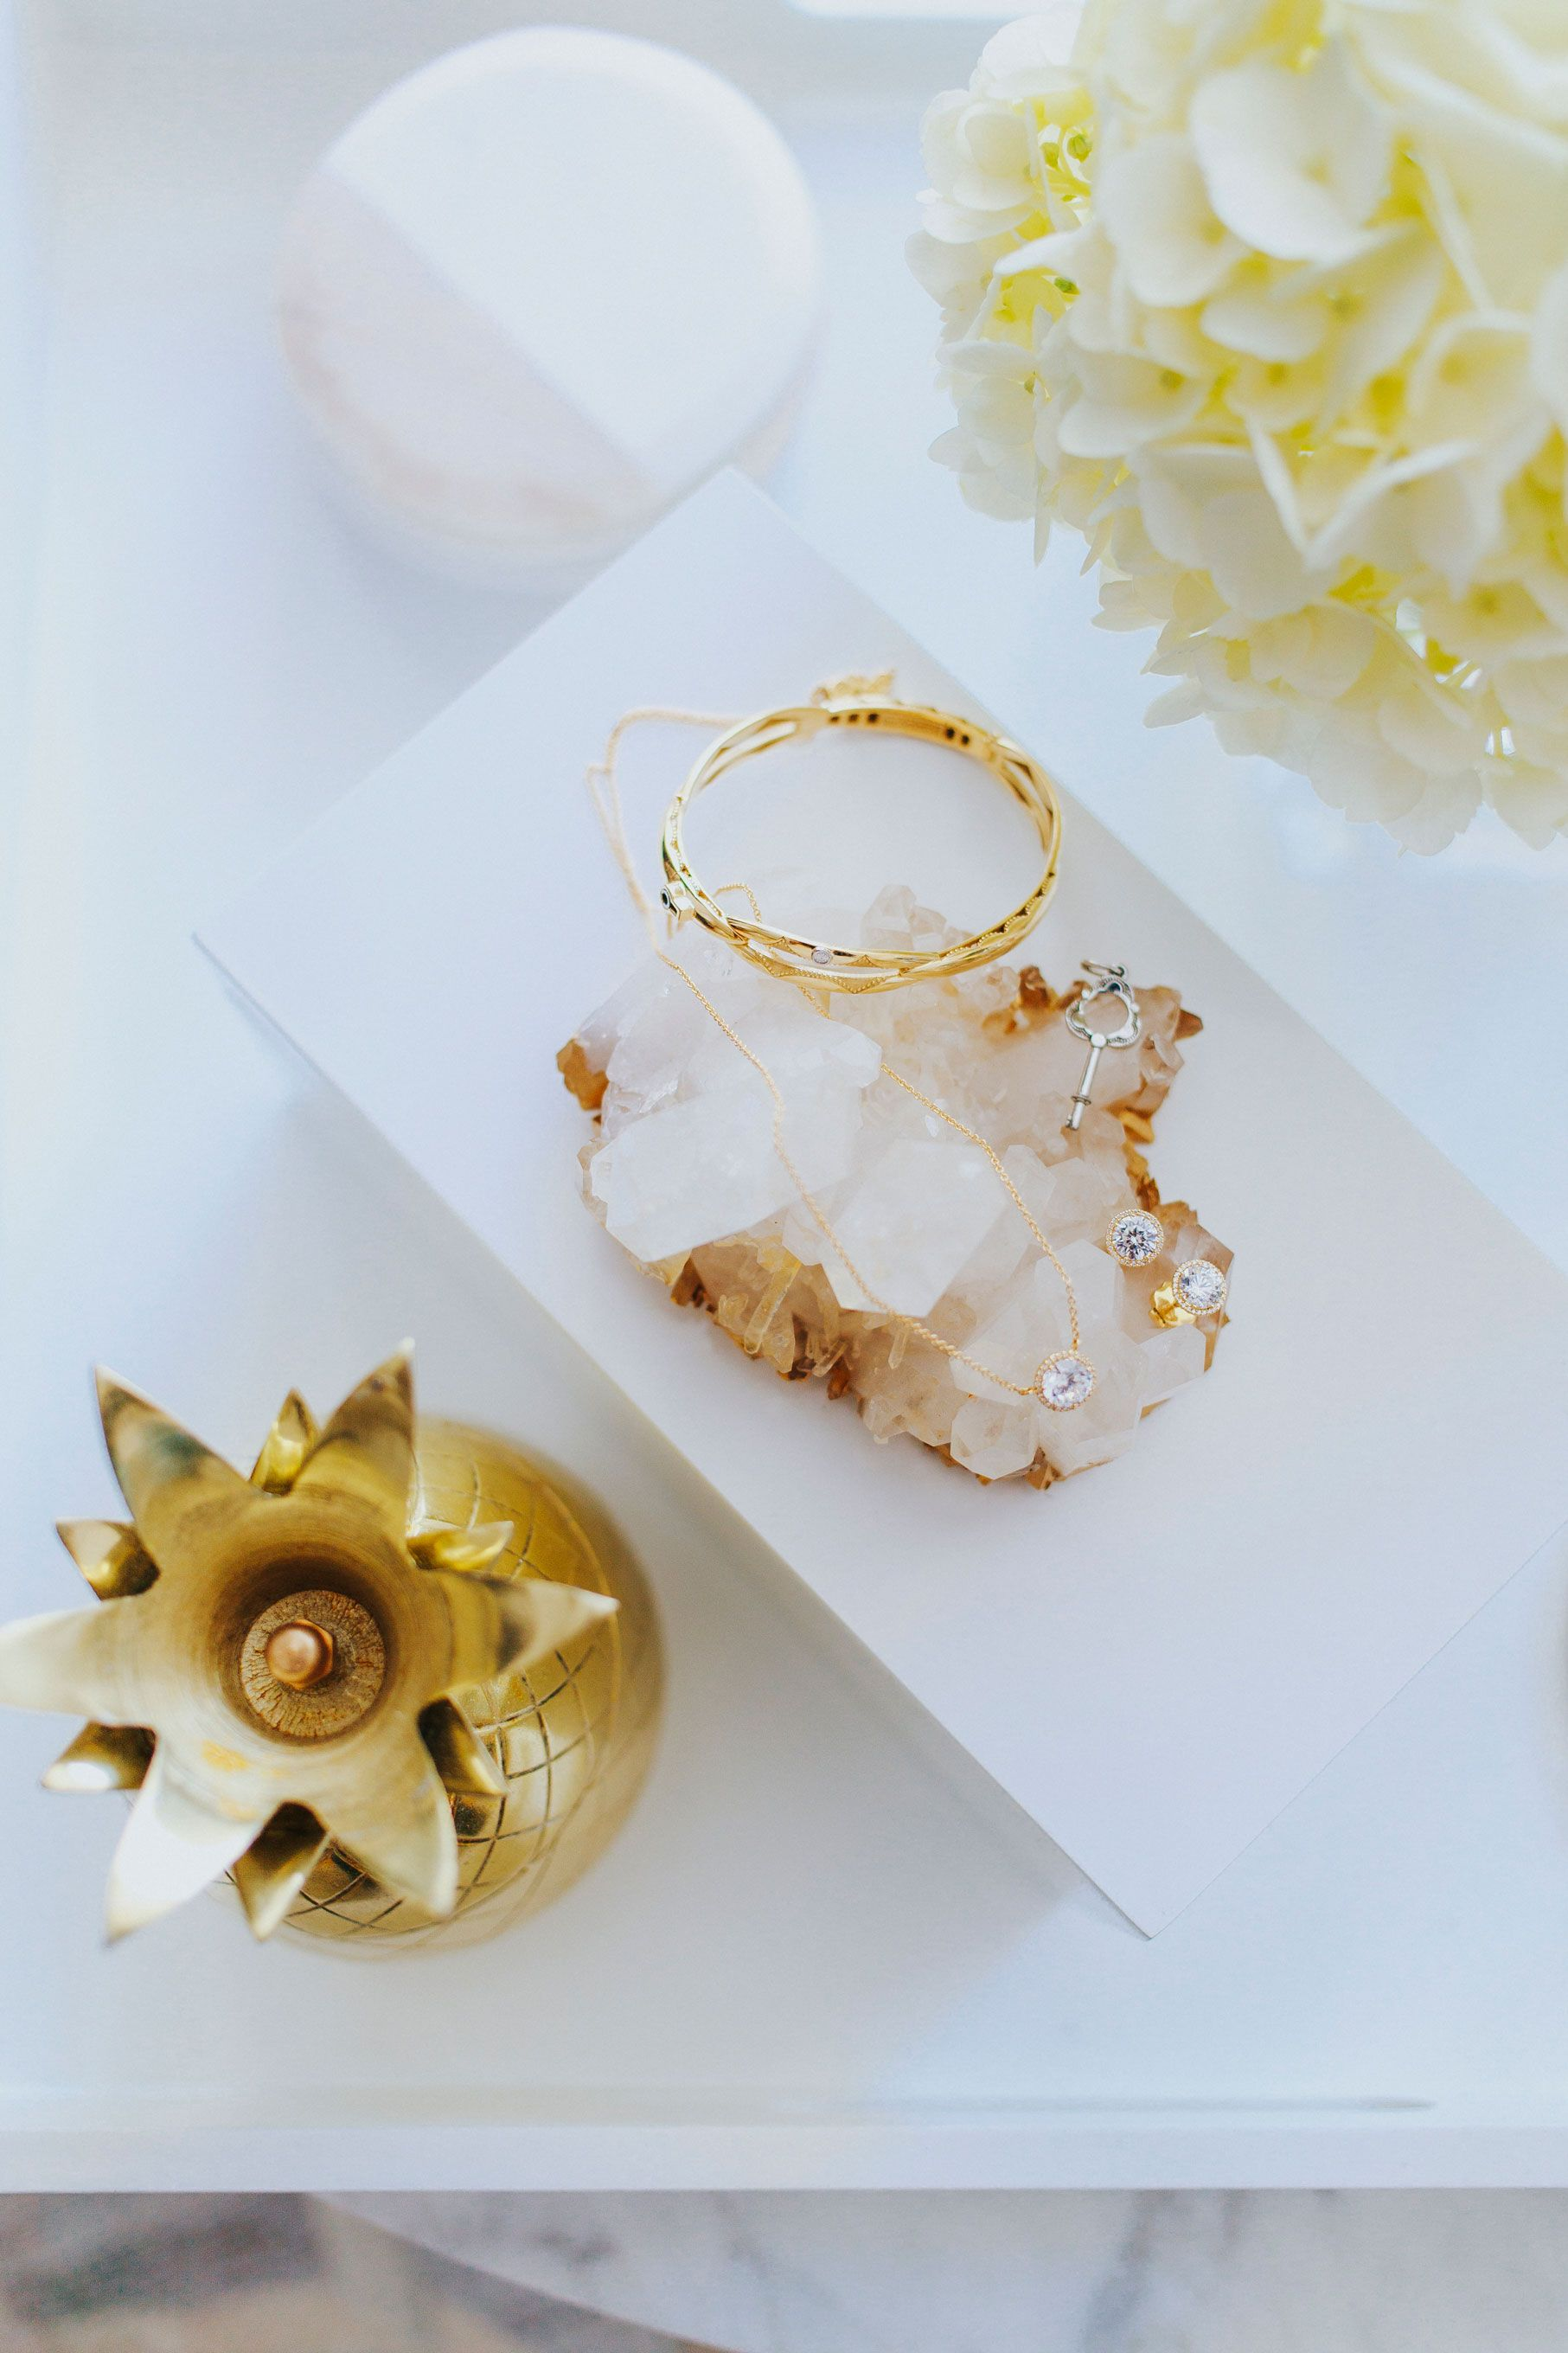 """<p>""""I'm obsessed with the feminine details of these handcrafted pieces by Tacori.<span class=""""redactor-invisible-space"""" data-verified=""""redactor"""" data-redactor-tag=""""span"""" data-redactor-class=""""redactor-invisible-space""""></span>""""</p><p><em data-redactor-tag=""""em"""" data-verified=""""redactor"""">Tacori Oval Promise Bracelet Yellow Gold, $5,900&#x3B; Encore Diamond Necklace*, $1,310&#x3B; Encore Diamond Stud Earrings*, $1,790&#x3B; Oval Promise Bracelet Silver and Rose Gold, $2,700&#x3B; Crescent Station Necklace London Blue Topaz, $500&#x3B; Crescent Crown Stud Earrings London Blue Topaz, $650&#x3B; *center diamond not included&#x3B; <a href=""""https://www.tacori.com/"""" data-tracking-id=""""recirc-text-link"""">tacori.com</a></em></p>"""